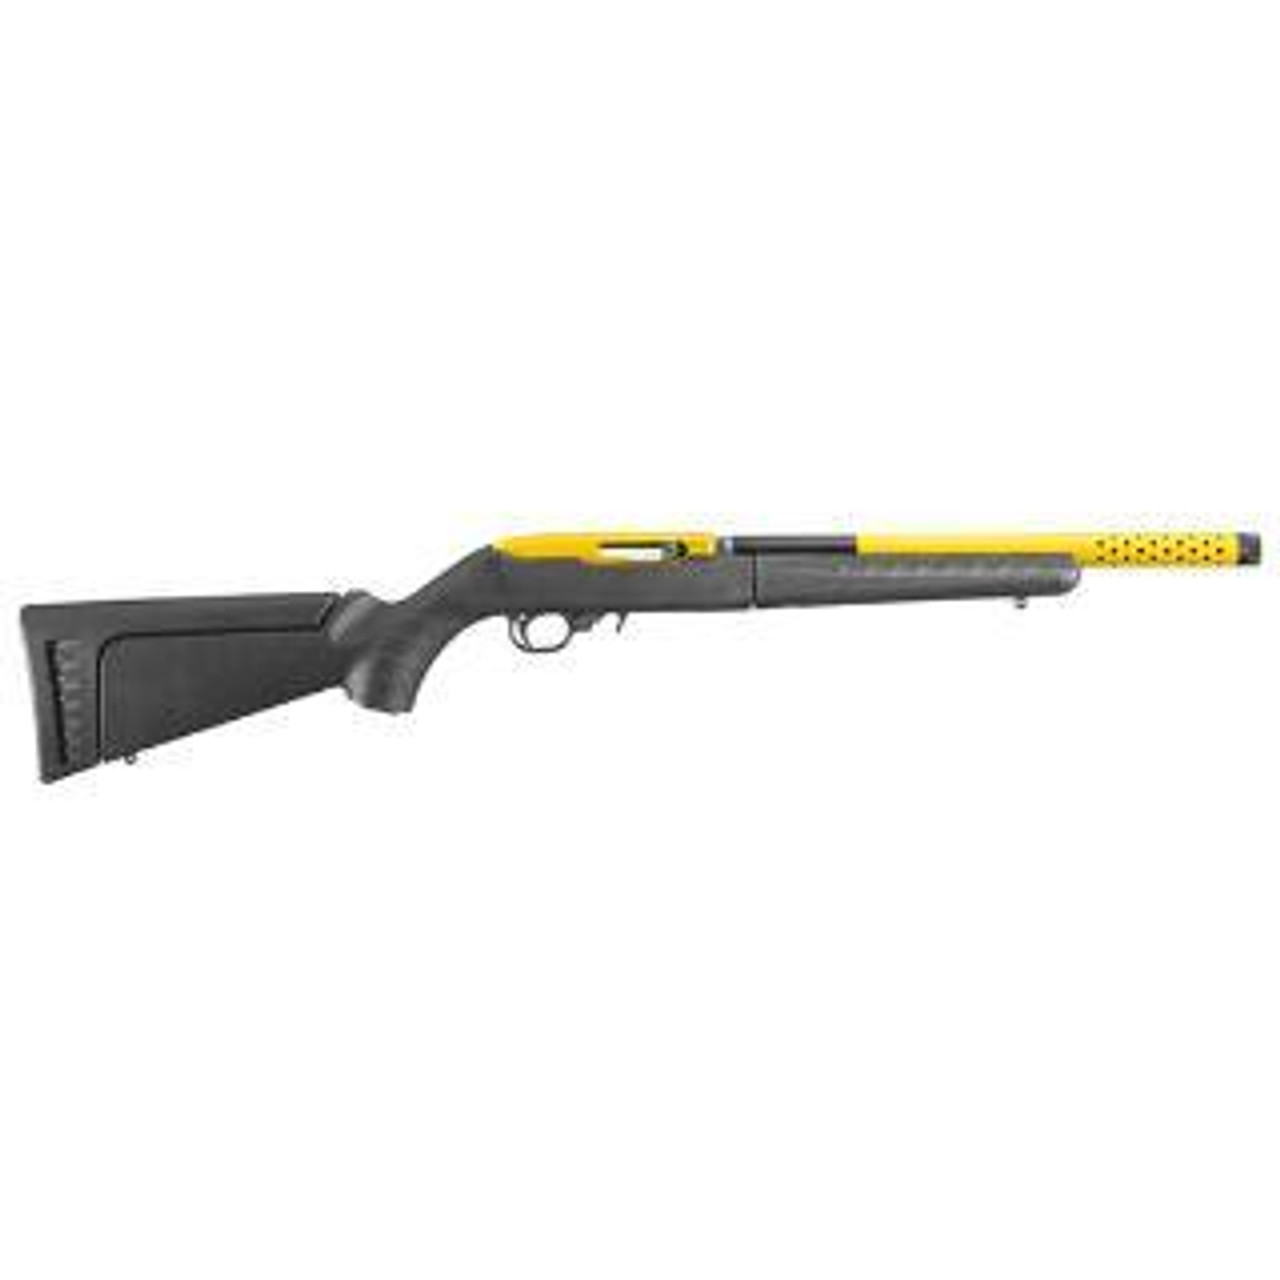 Ruger 10/22 Takedown Lite CALIFORNIA LEGAL  - .22LR - Contractor Yellow